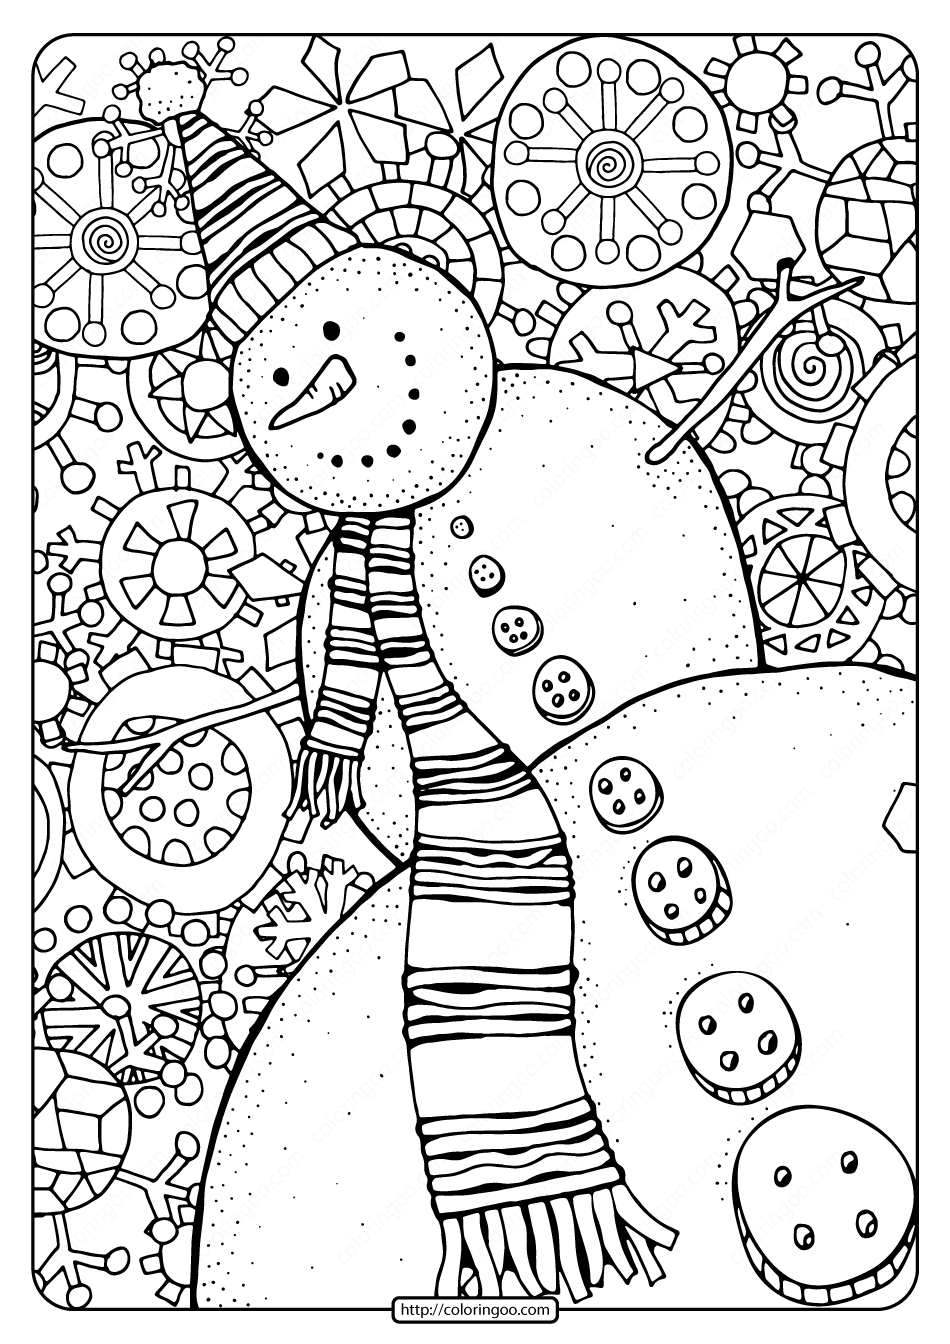 snowman for coloring happy snowman with snowflakes pdf coloring page snowman coloring for